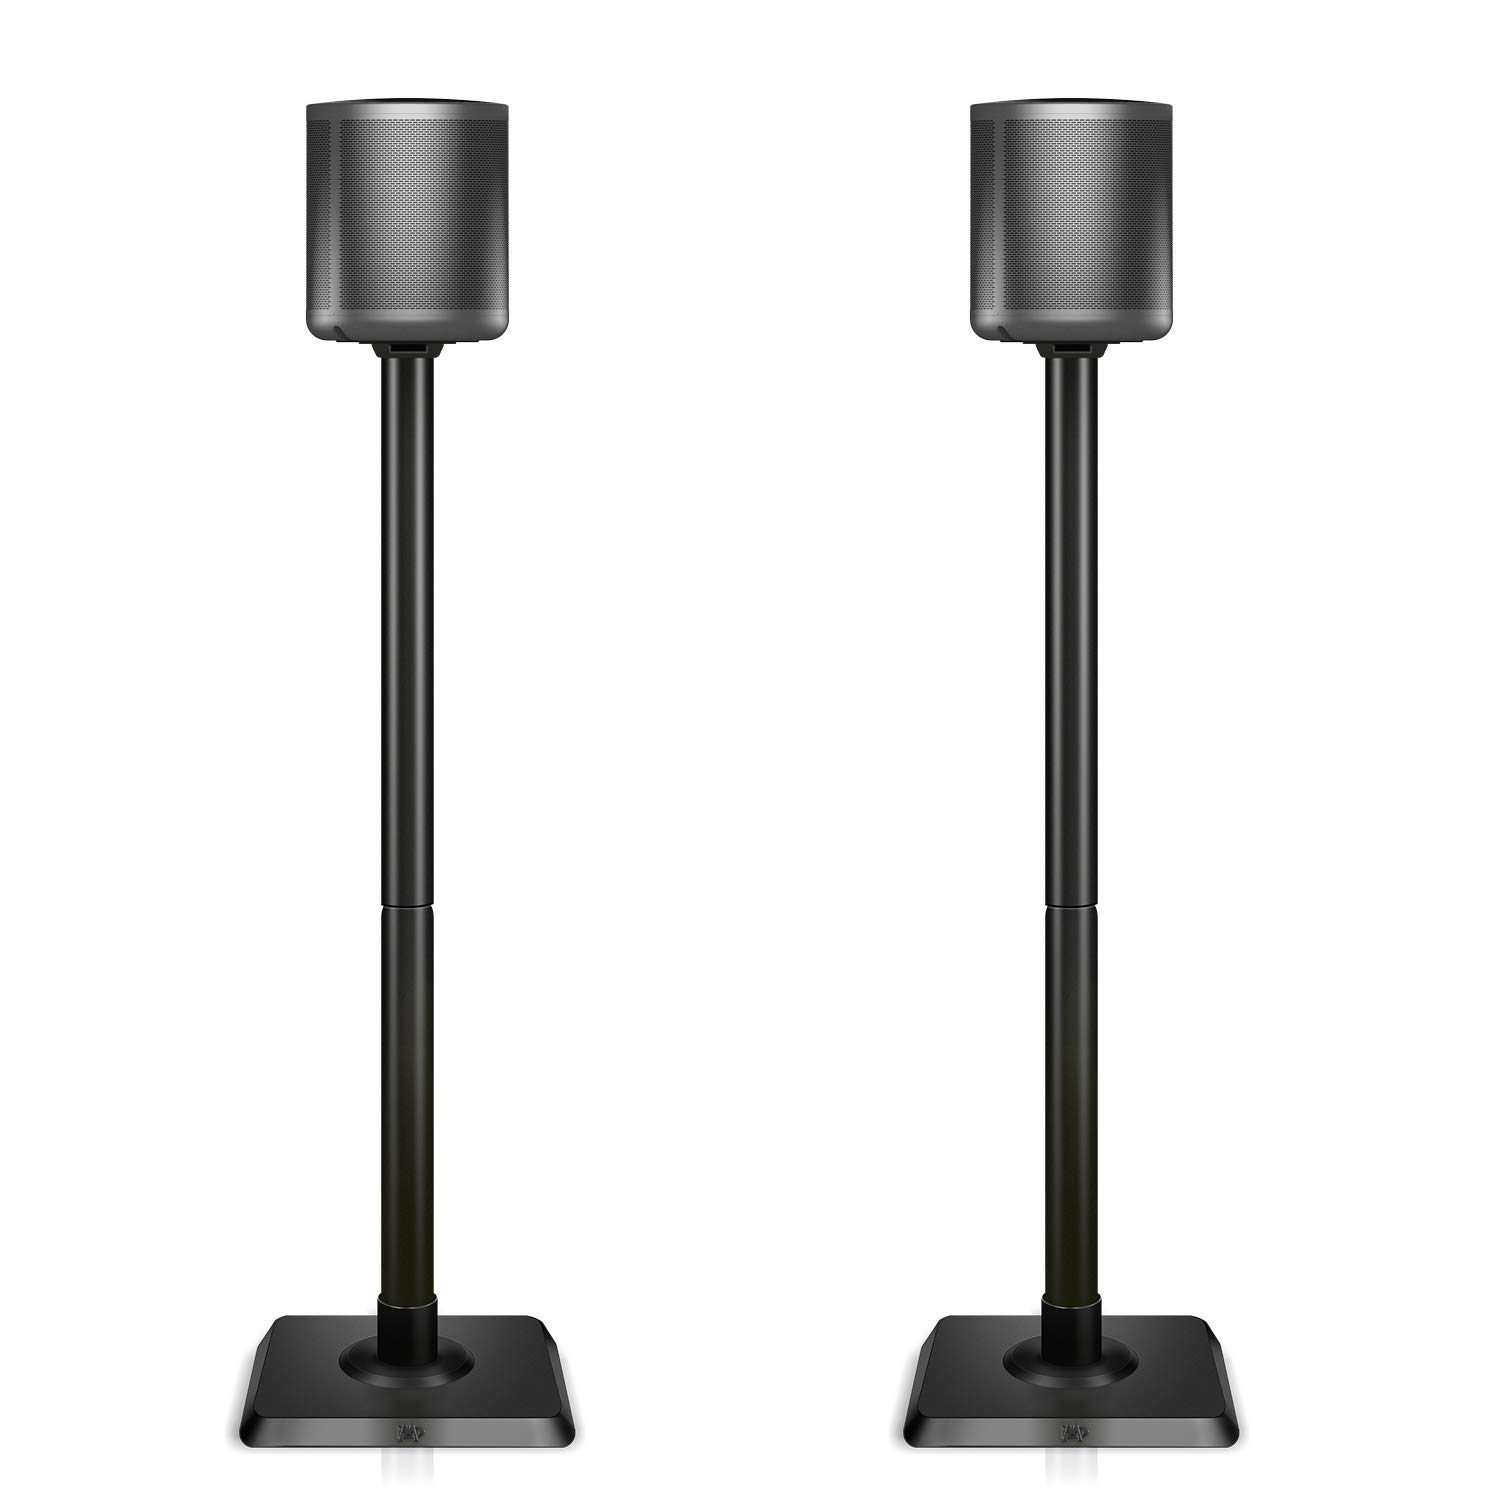 Mounting Dream Speaker Stands for Satellite & Small Bookshelf Speakers - Set of 2 Floor Stand Mount for Bose Polk JBL Sony Yamaha and Others - 11LBS Capacity MD5402 (Speakers Not Included) by Mounting Dream